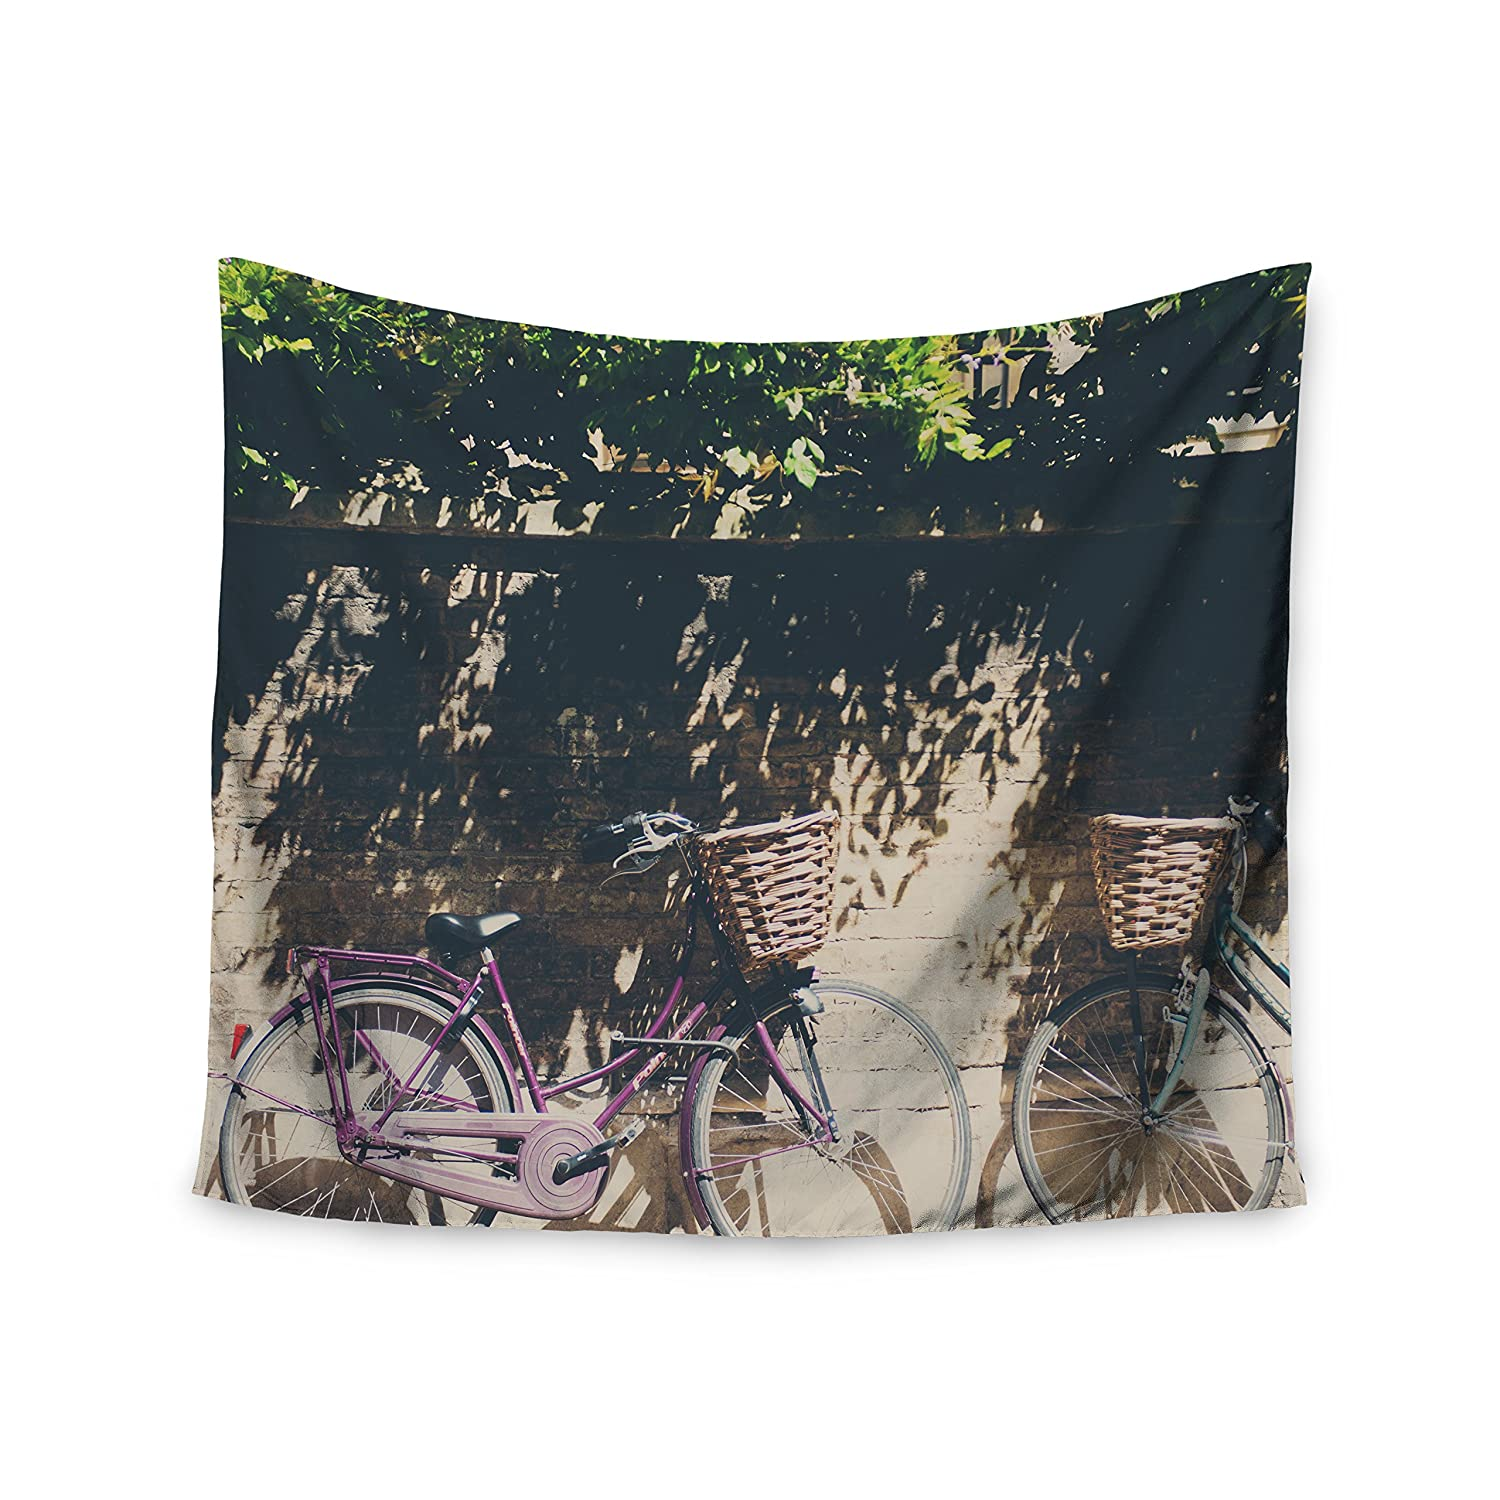 68 X 80 Kess InHouse Laura Evans Pretty Bicycles Brown Green Wall Tapestry